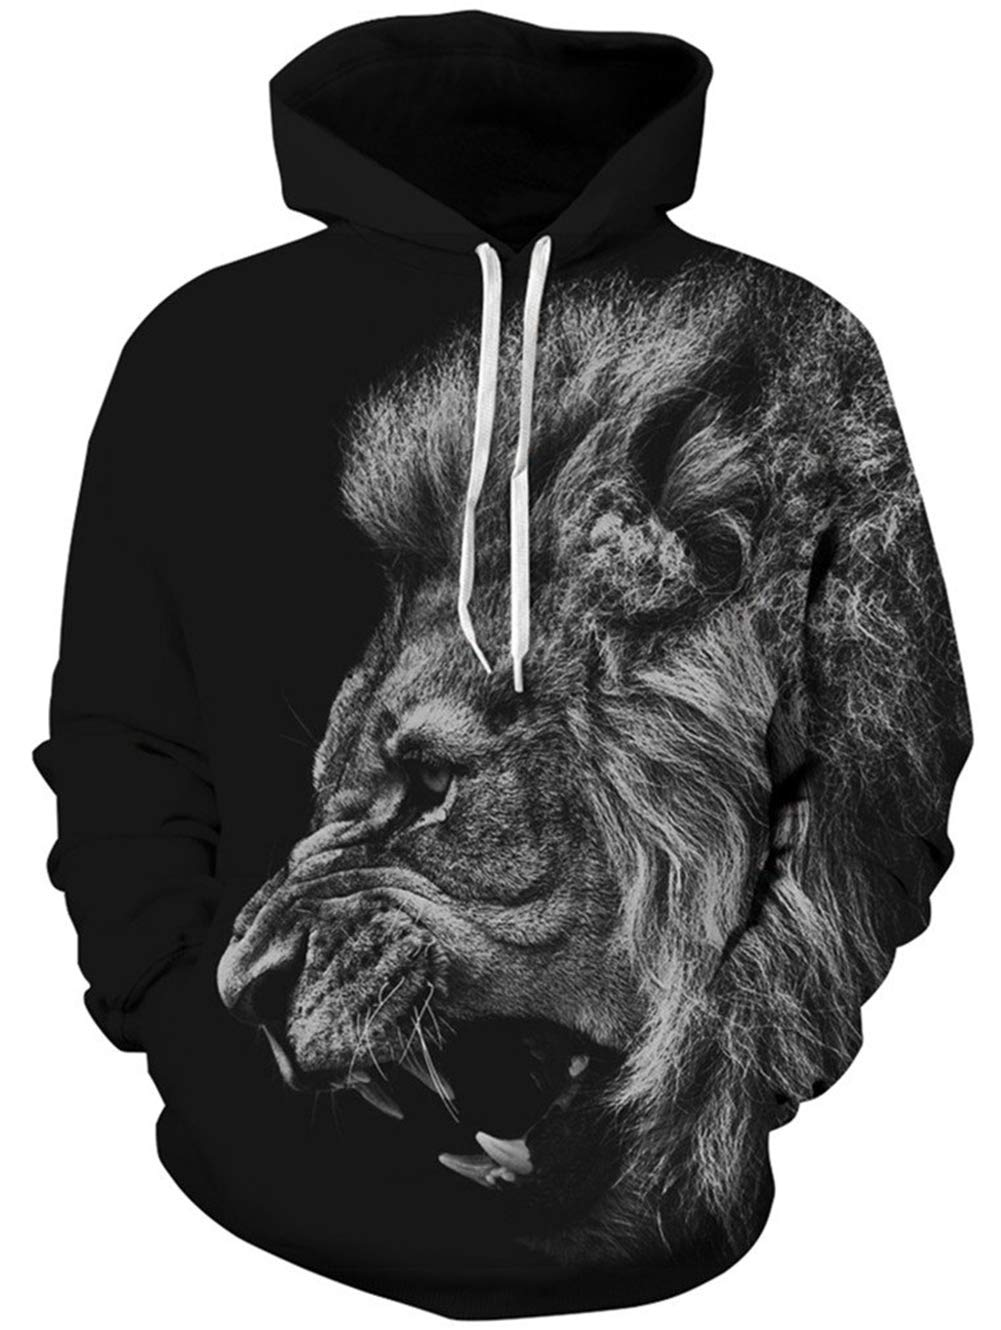 TUONROAD Unisex Digital Print Animal Face Hooded Pullover Solid Black Grey Hairy Roaring Lion Sweater with Sharp Teeth 3D Cool Carton Hoodies Plus Size Athletic Tops Sweatshirt with Kangaroo Pockets